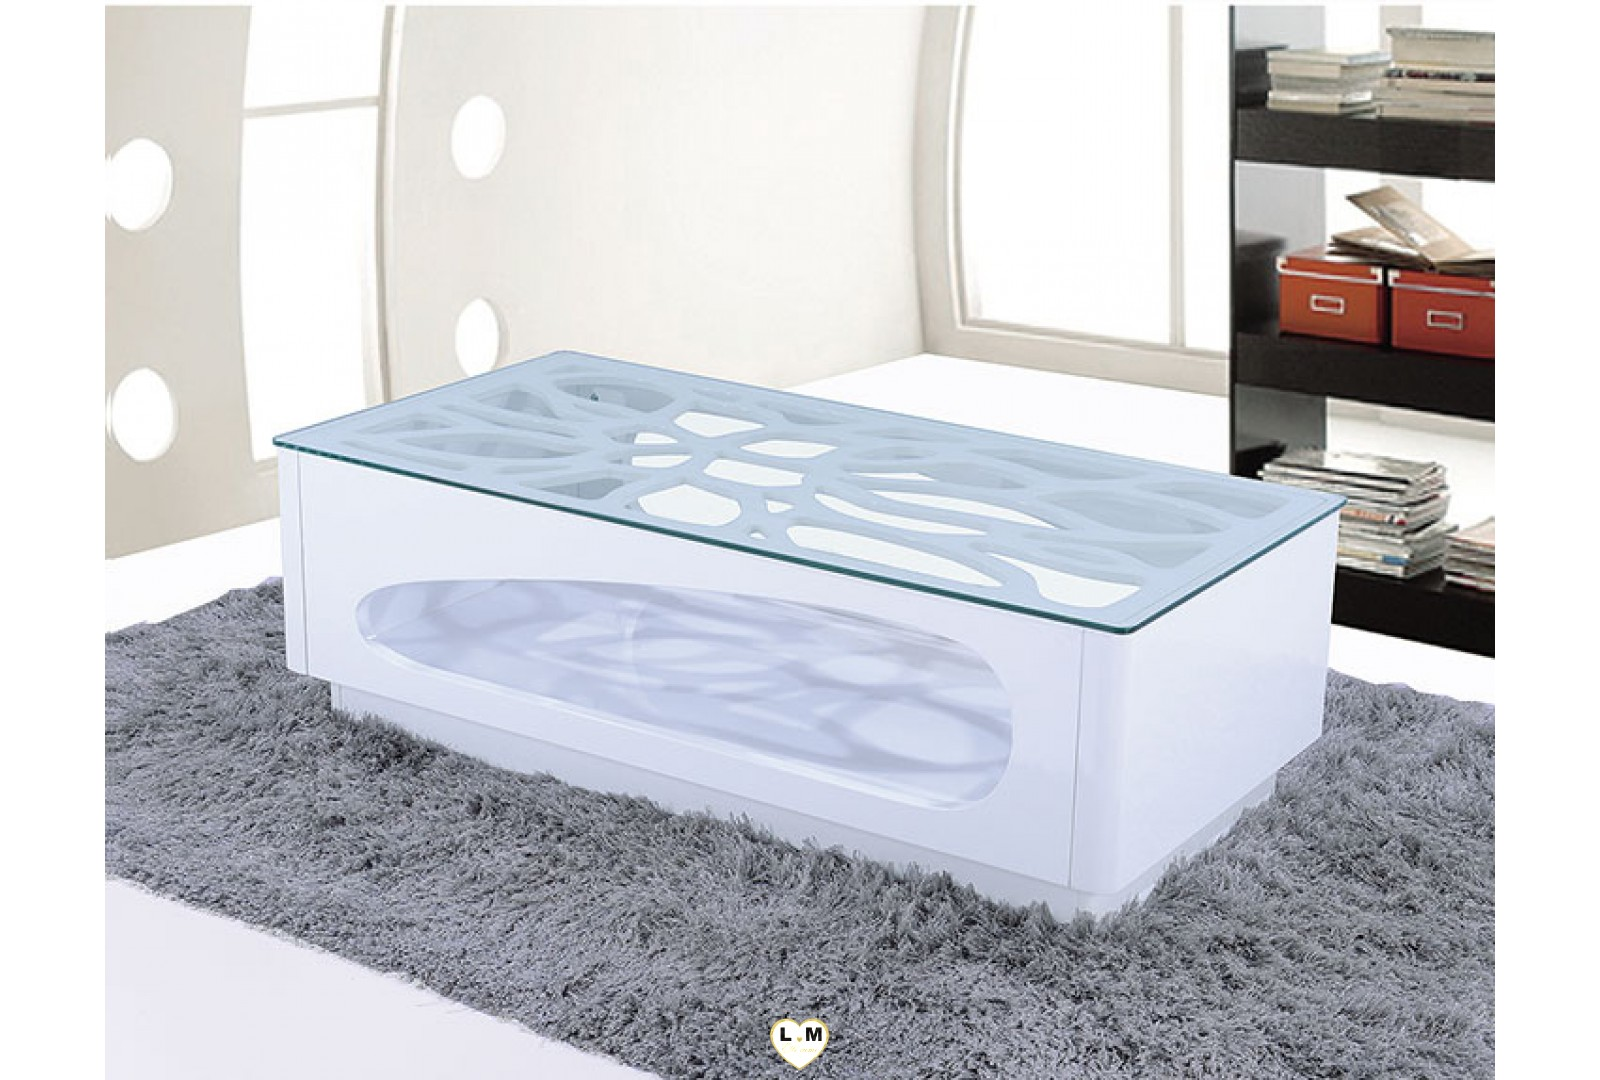 tba190b table basse laque blanc verre transparent lignemeuble com. Black Bedroom Furniture Sets. Home Design Ideas